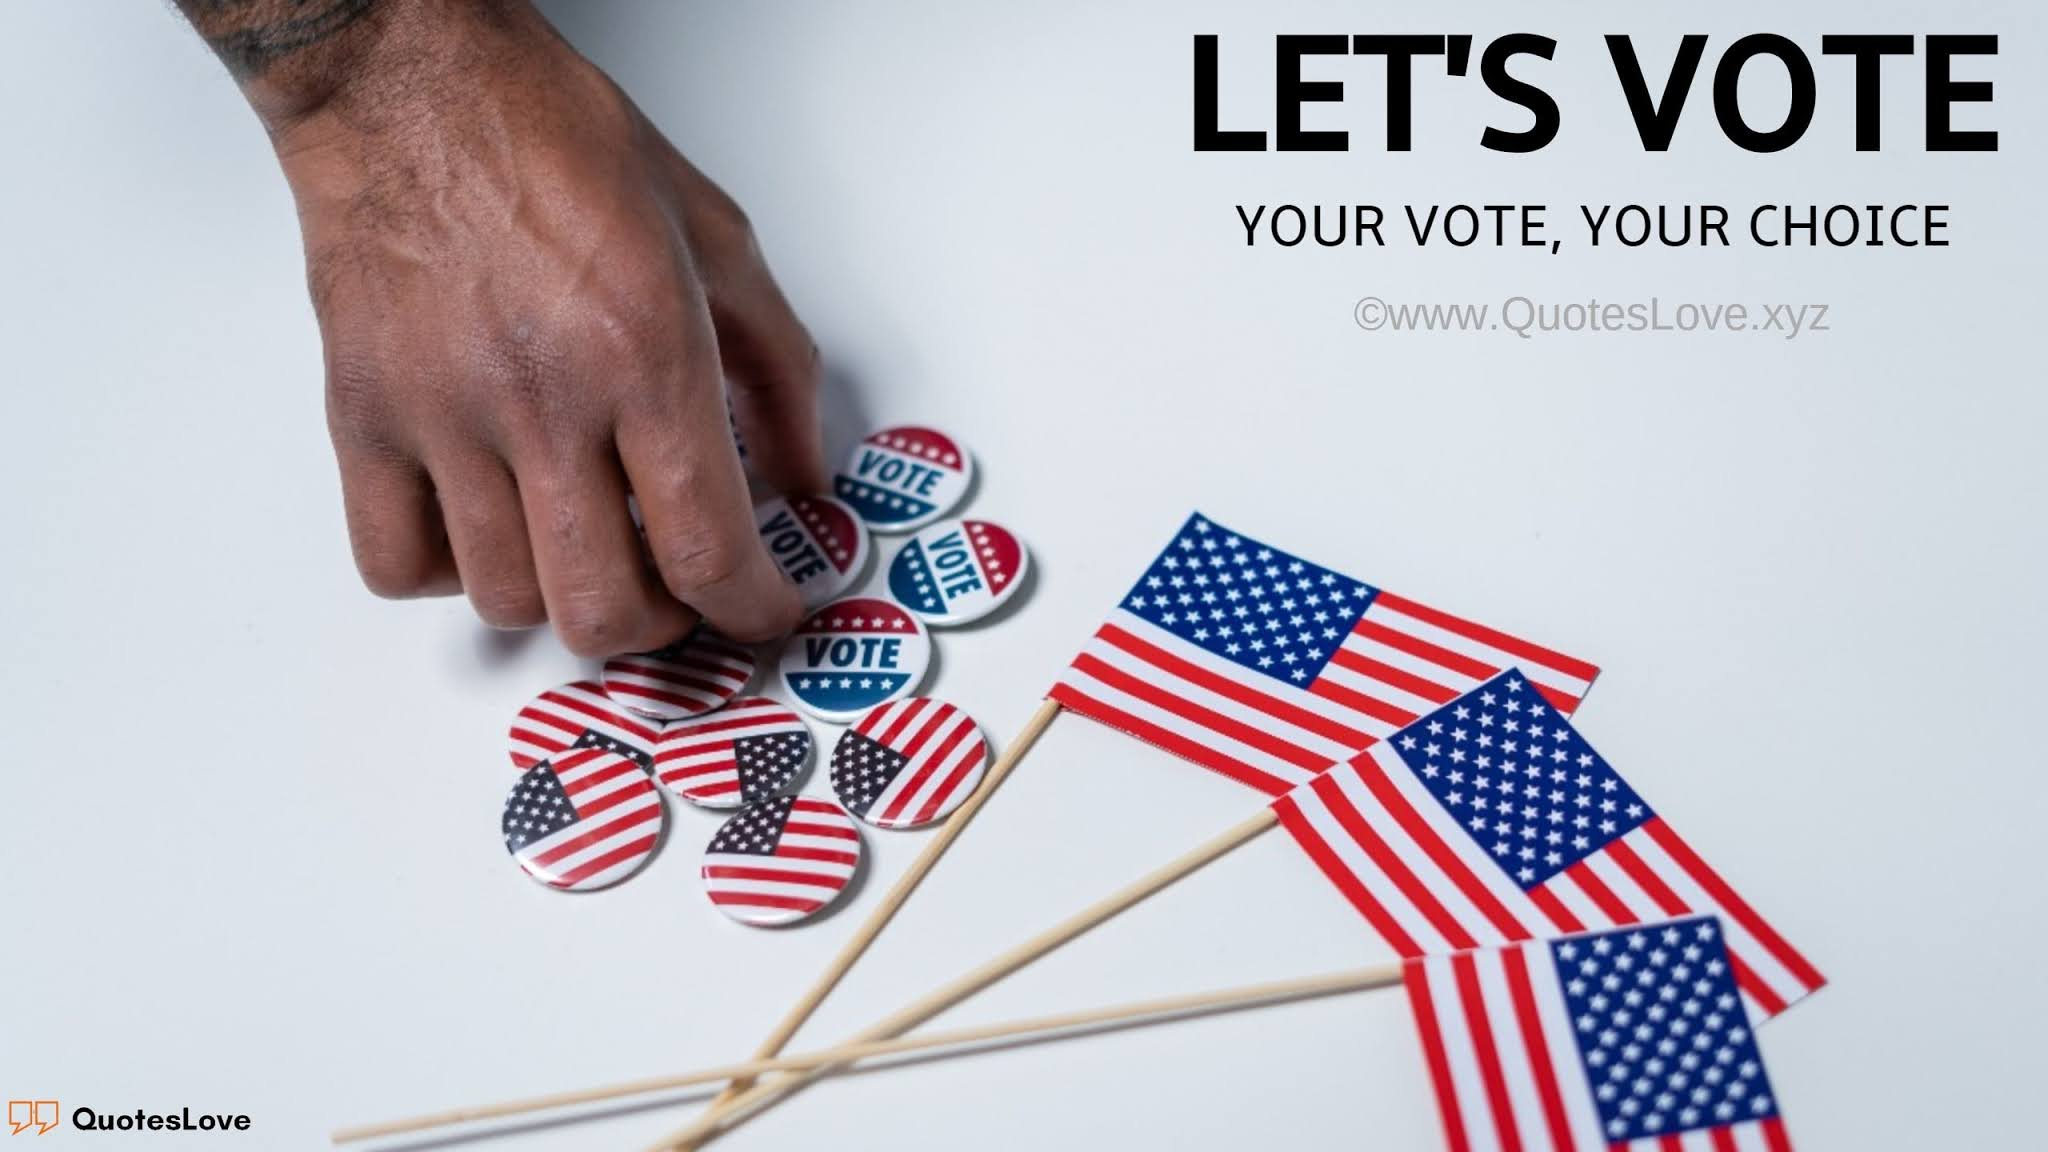 VOTING QUOTES USA Election Quotes  Go Vote Quotes, Slogans, Images, Poster